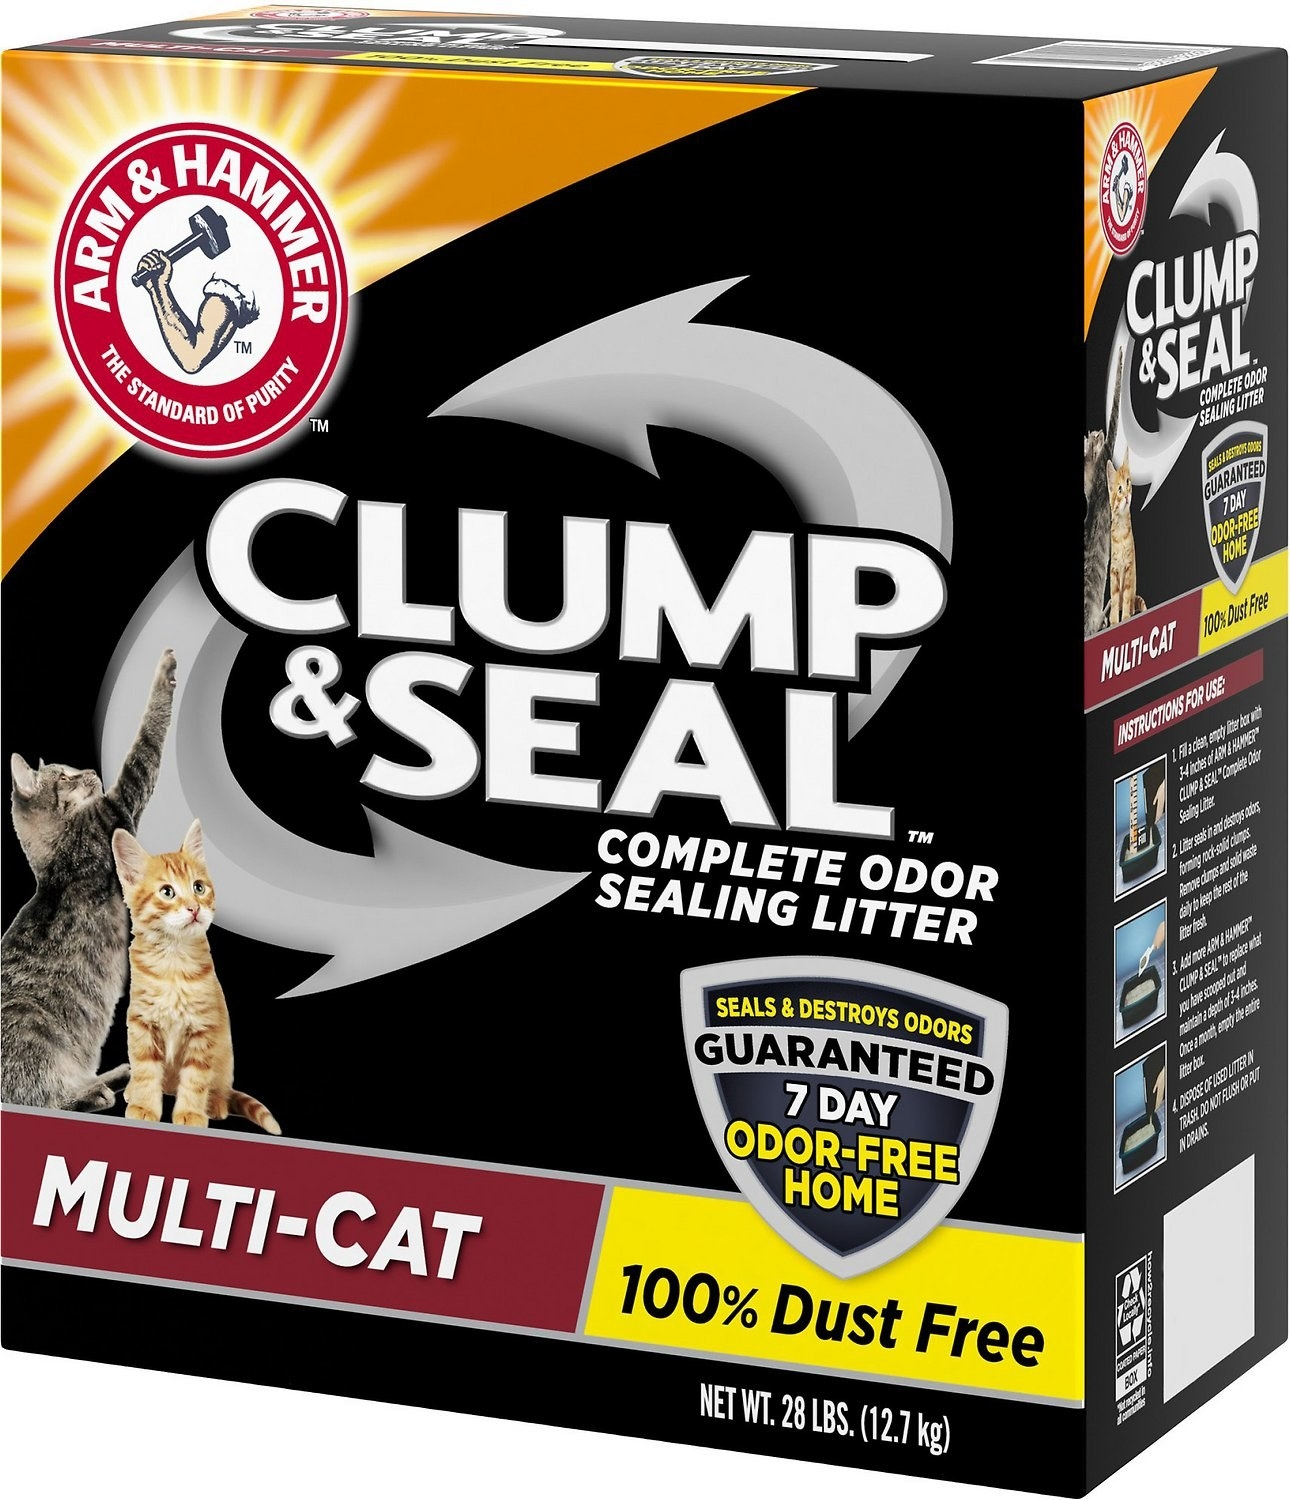 A box of the Arm & Hammer Litter Clump & Seal Multi-Cat Scented Clumping Clay Cat Litter